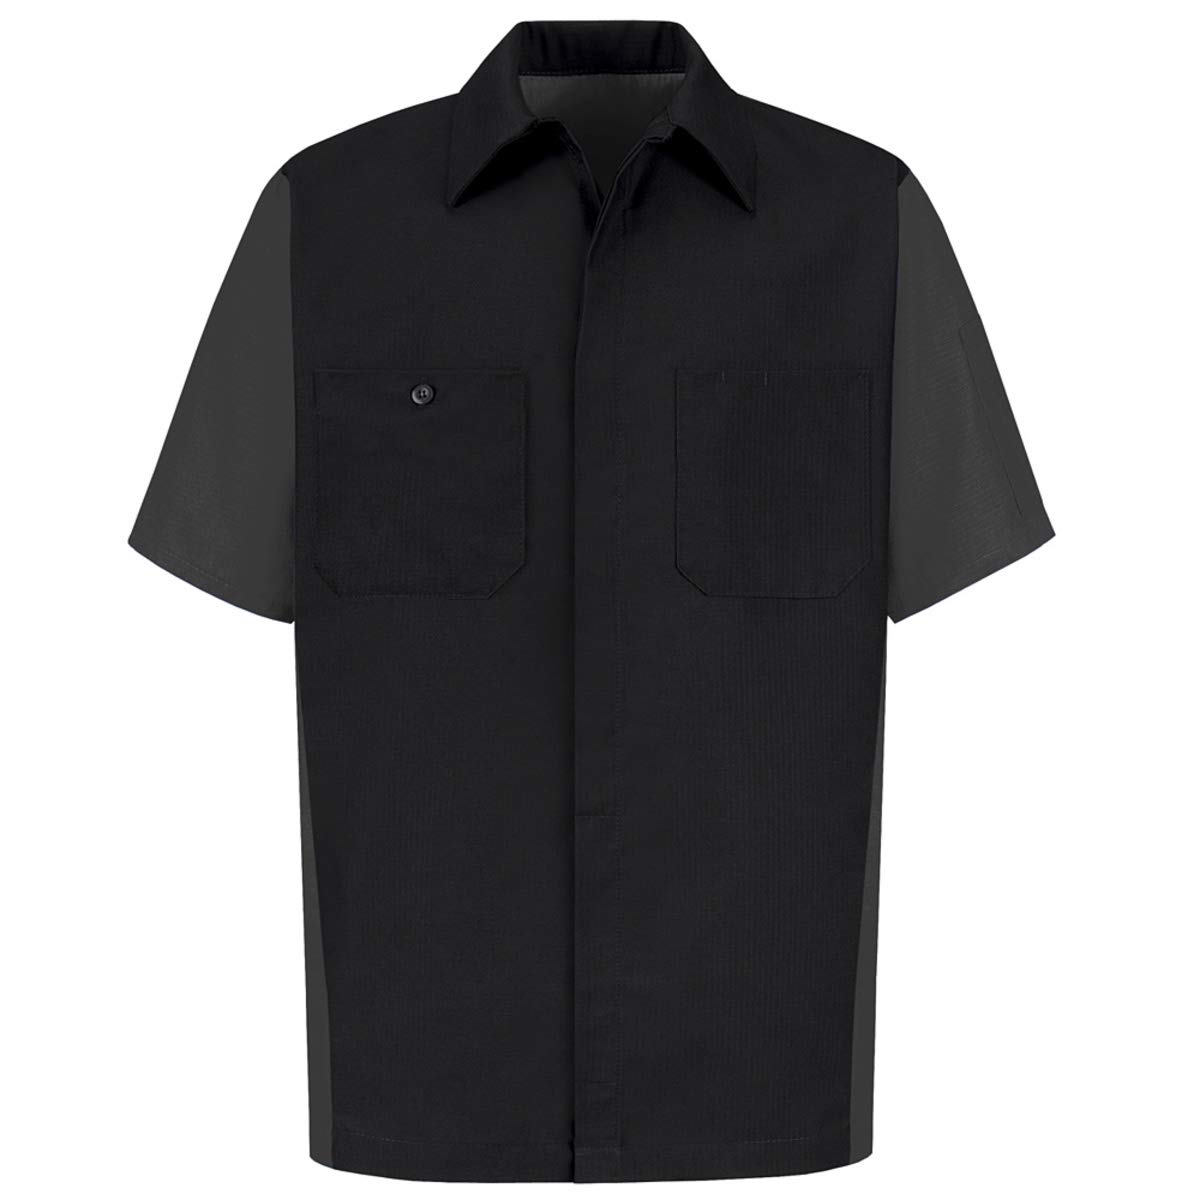 Red Kap Small Black And Charcoal 4.25 Ounce Polyester/Cotton Shirt With Button Closure